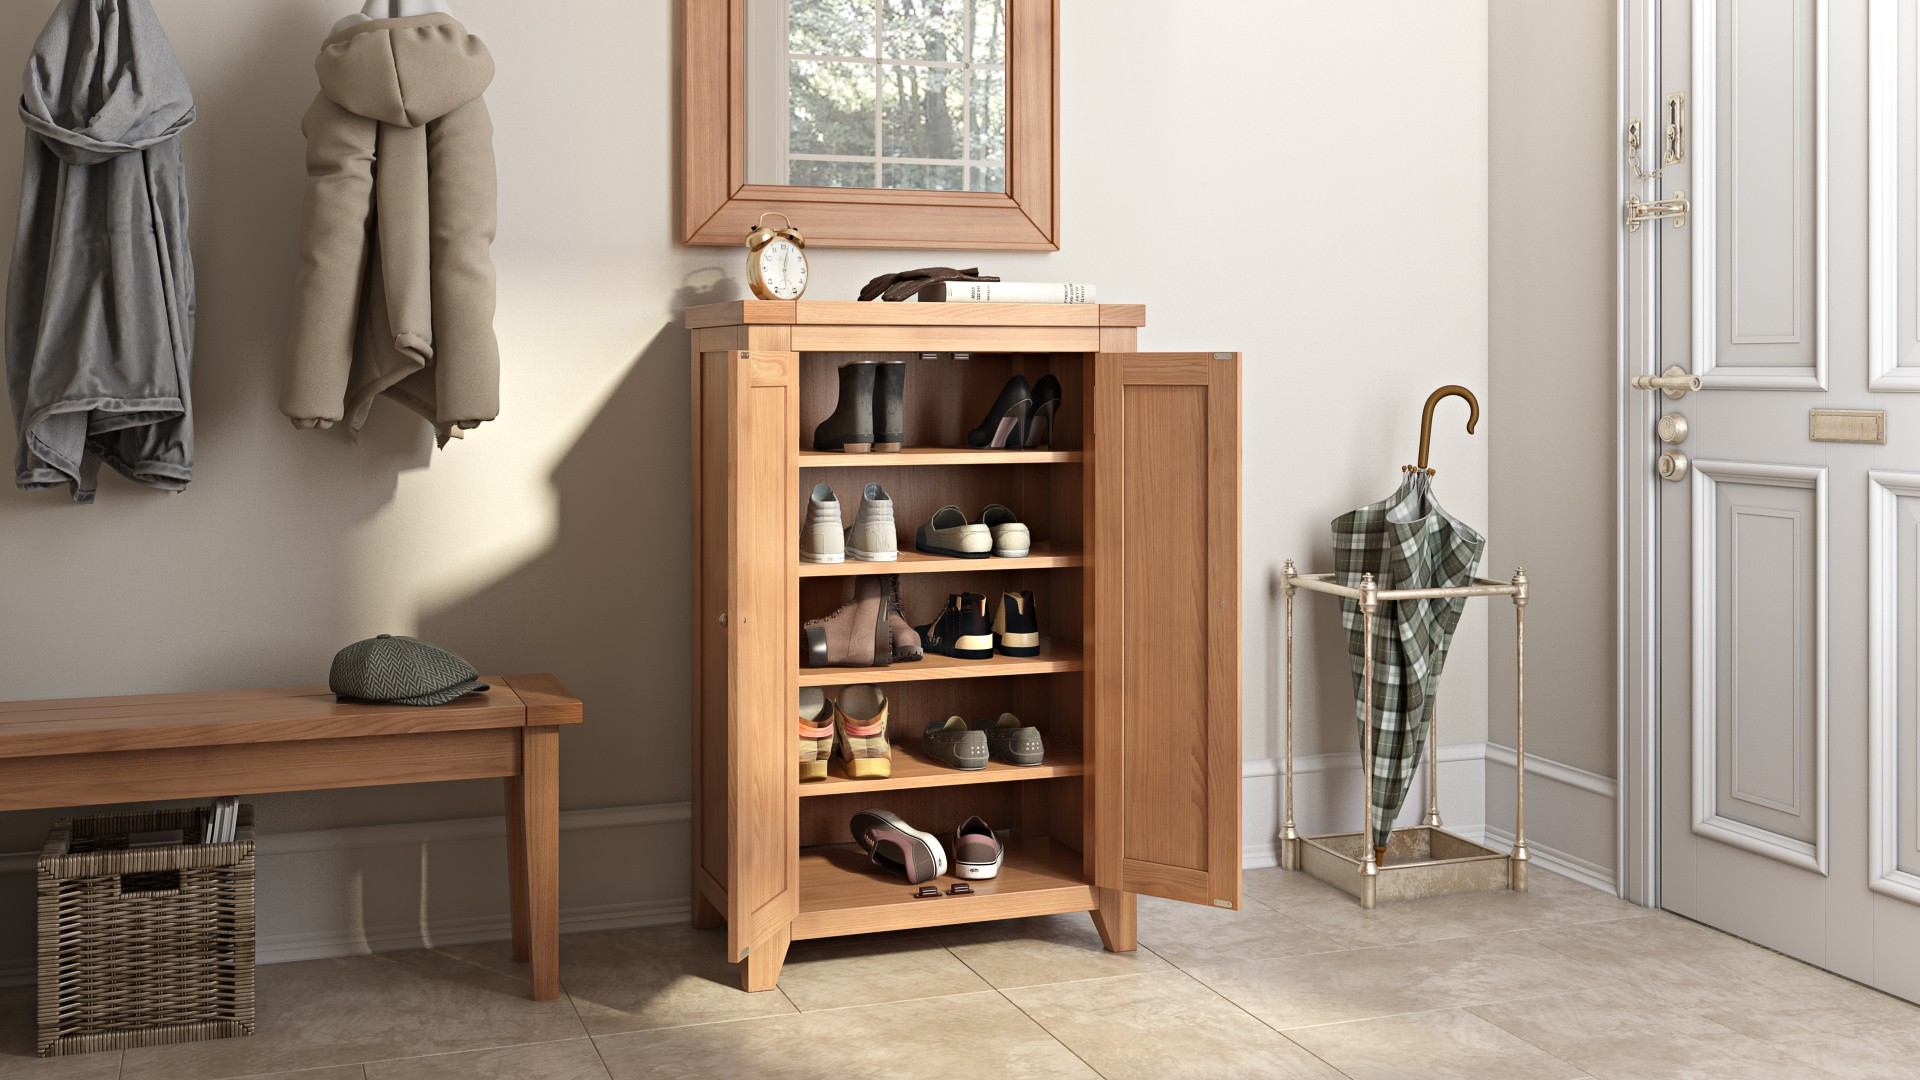 Cotswold Shoe Storage Cupboard & Cotswold Shoe Storage Cupboard | Hallowood